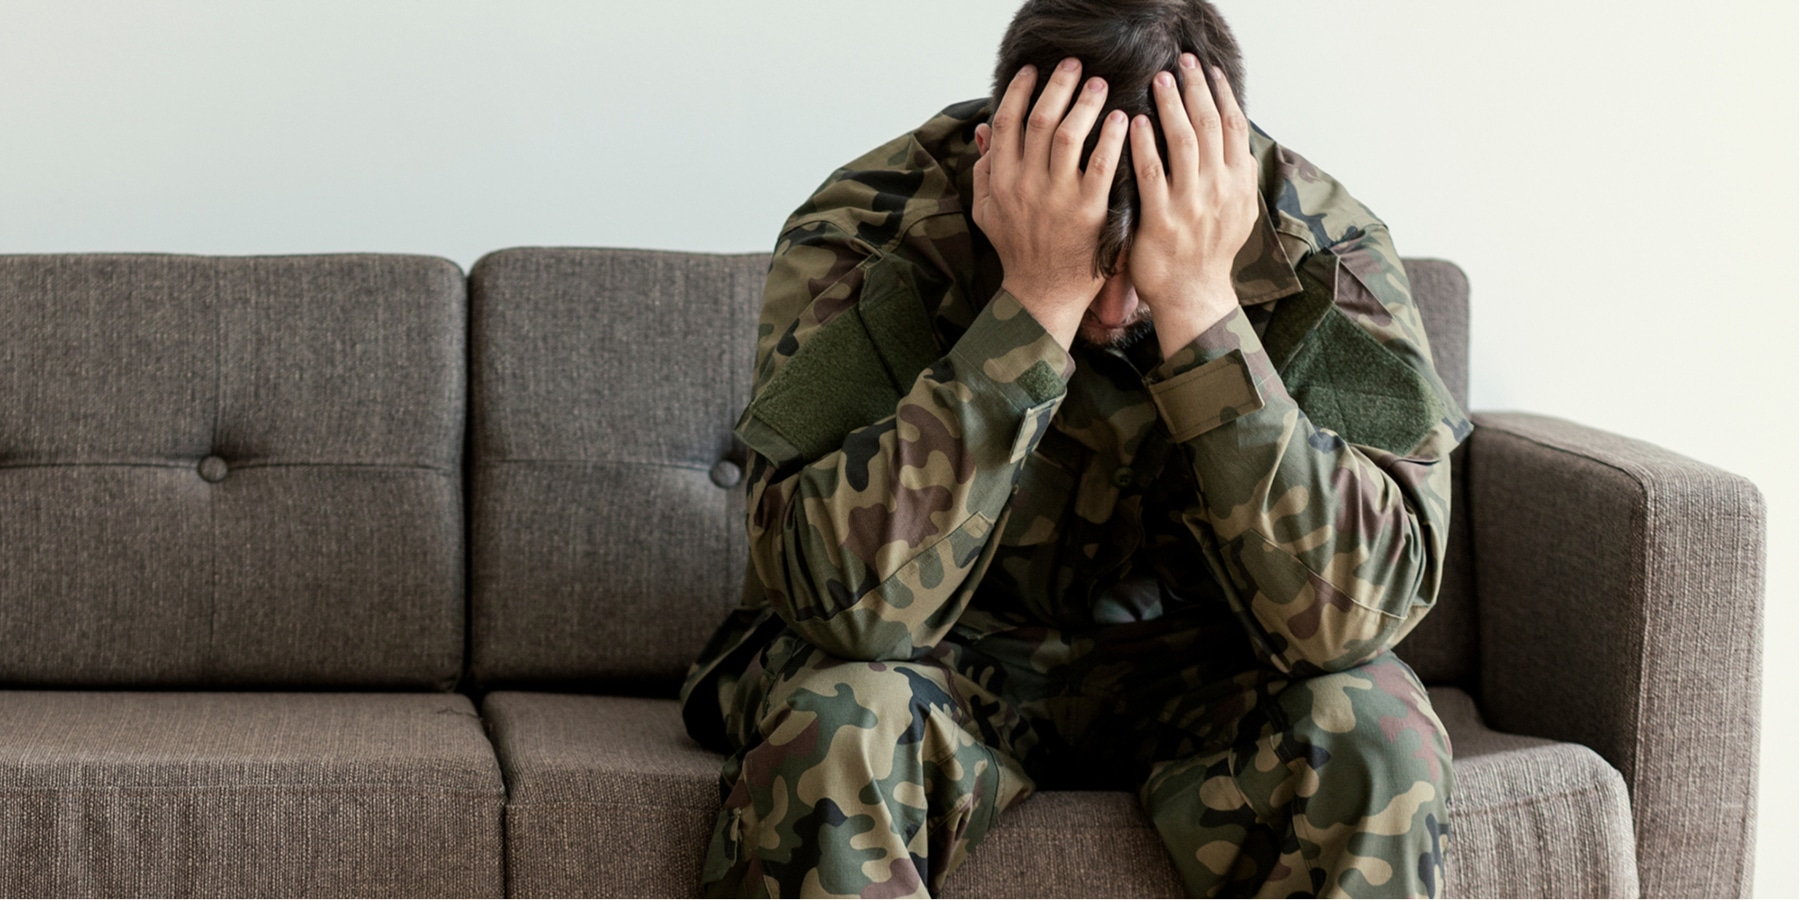 The Challenge for Many Veterans